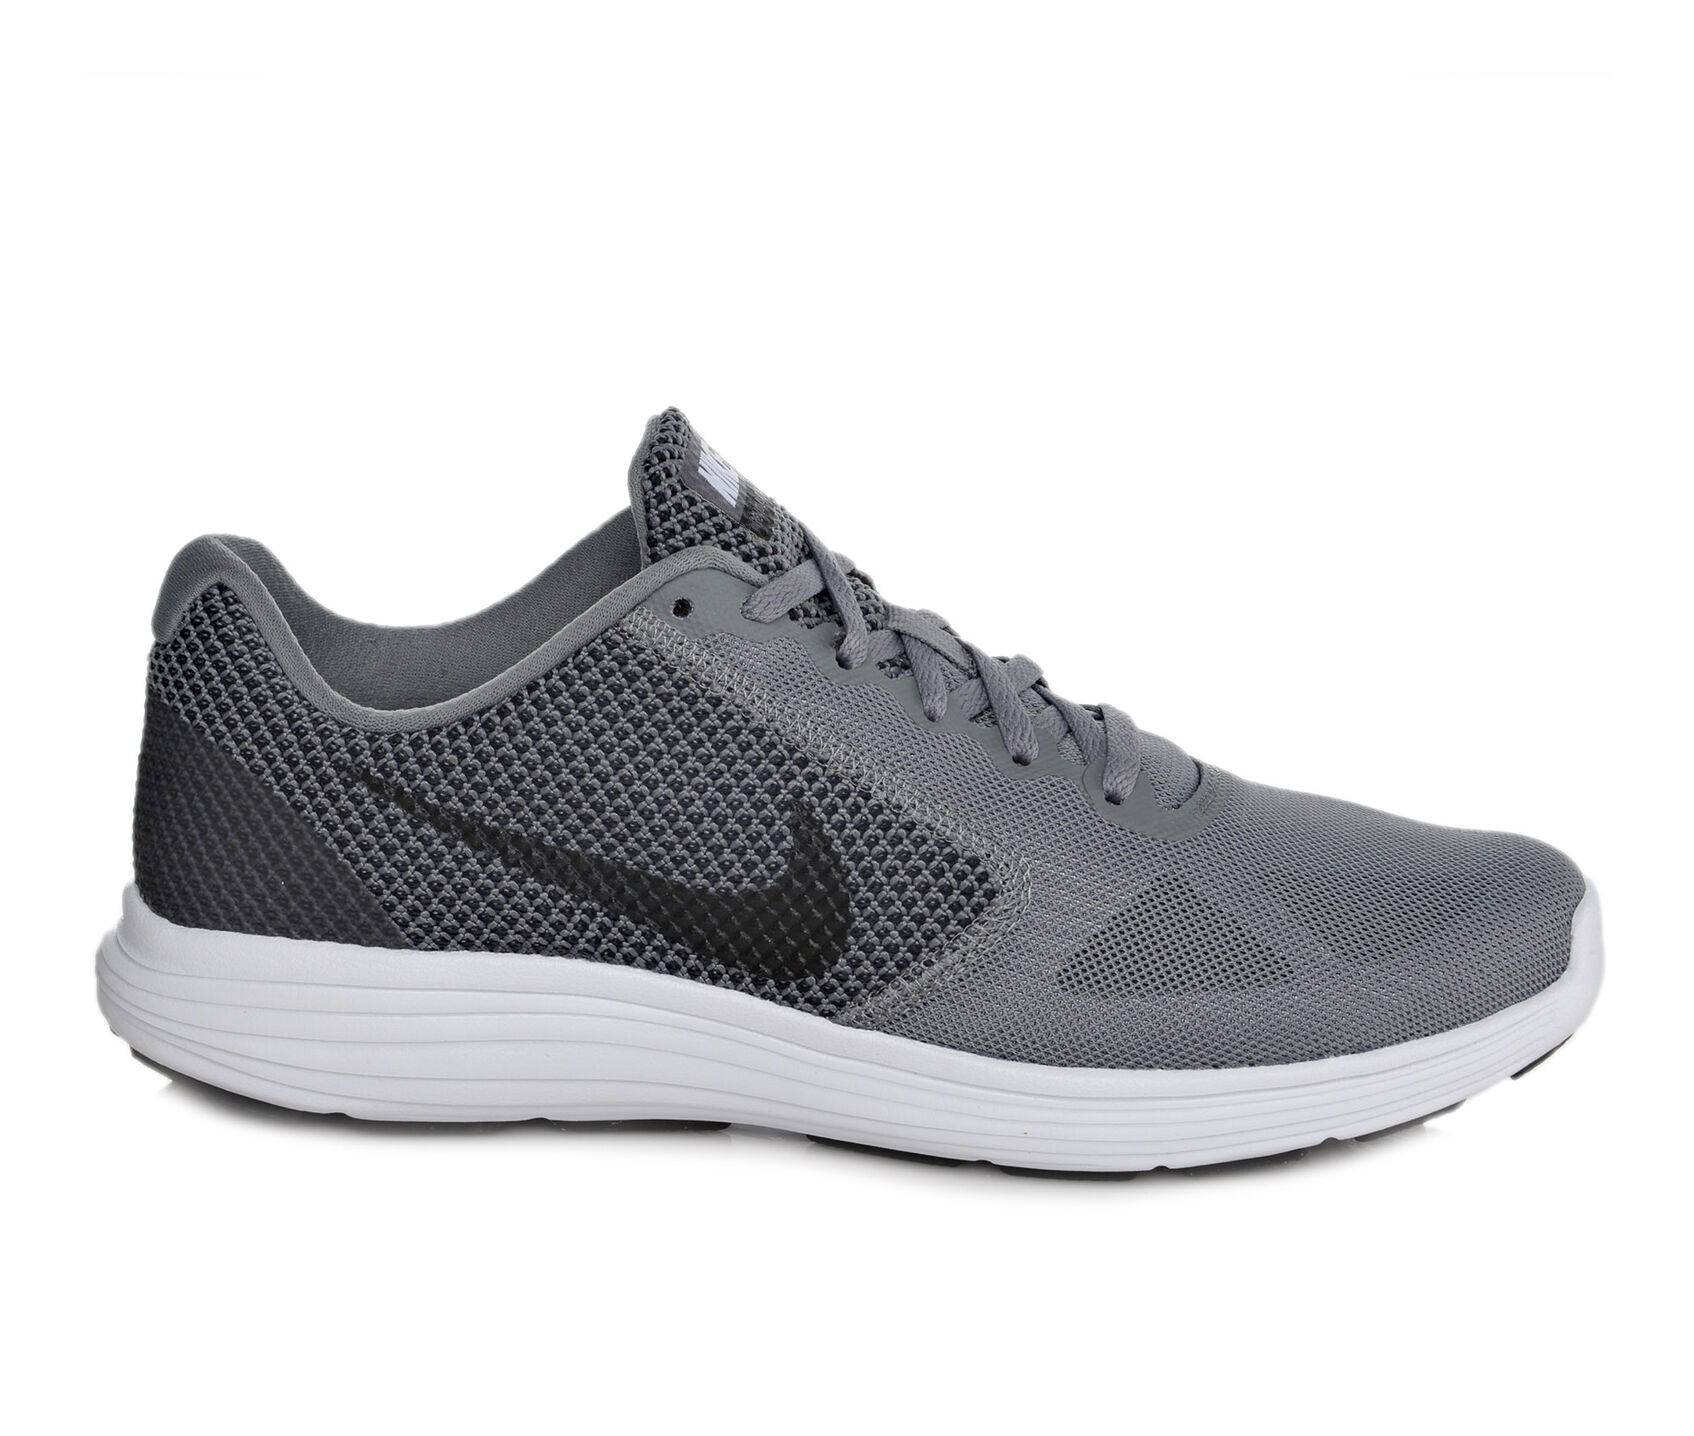 Womens Extra Wide Nike Shoes